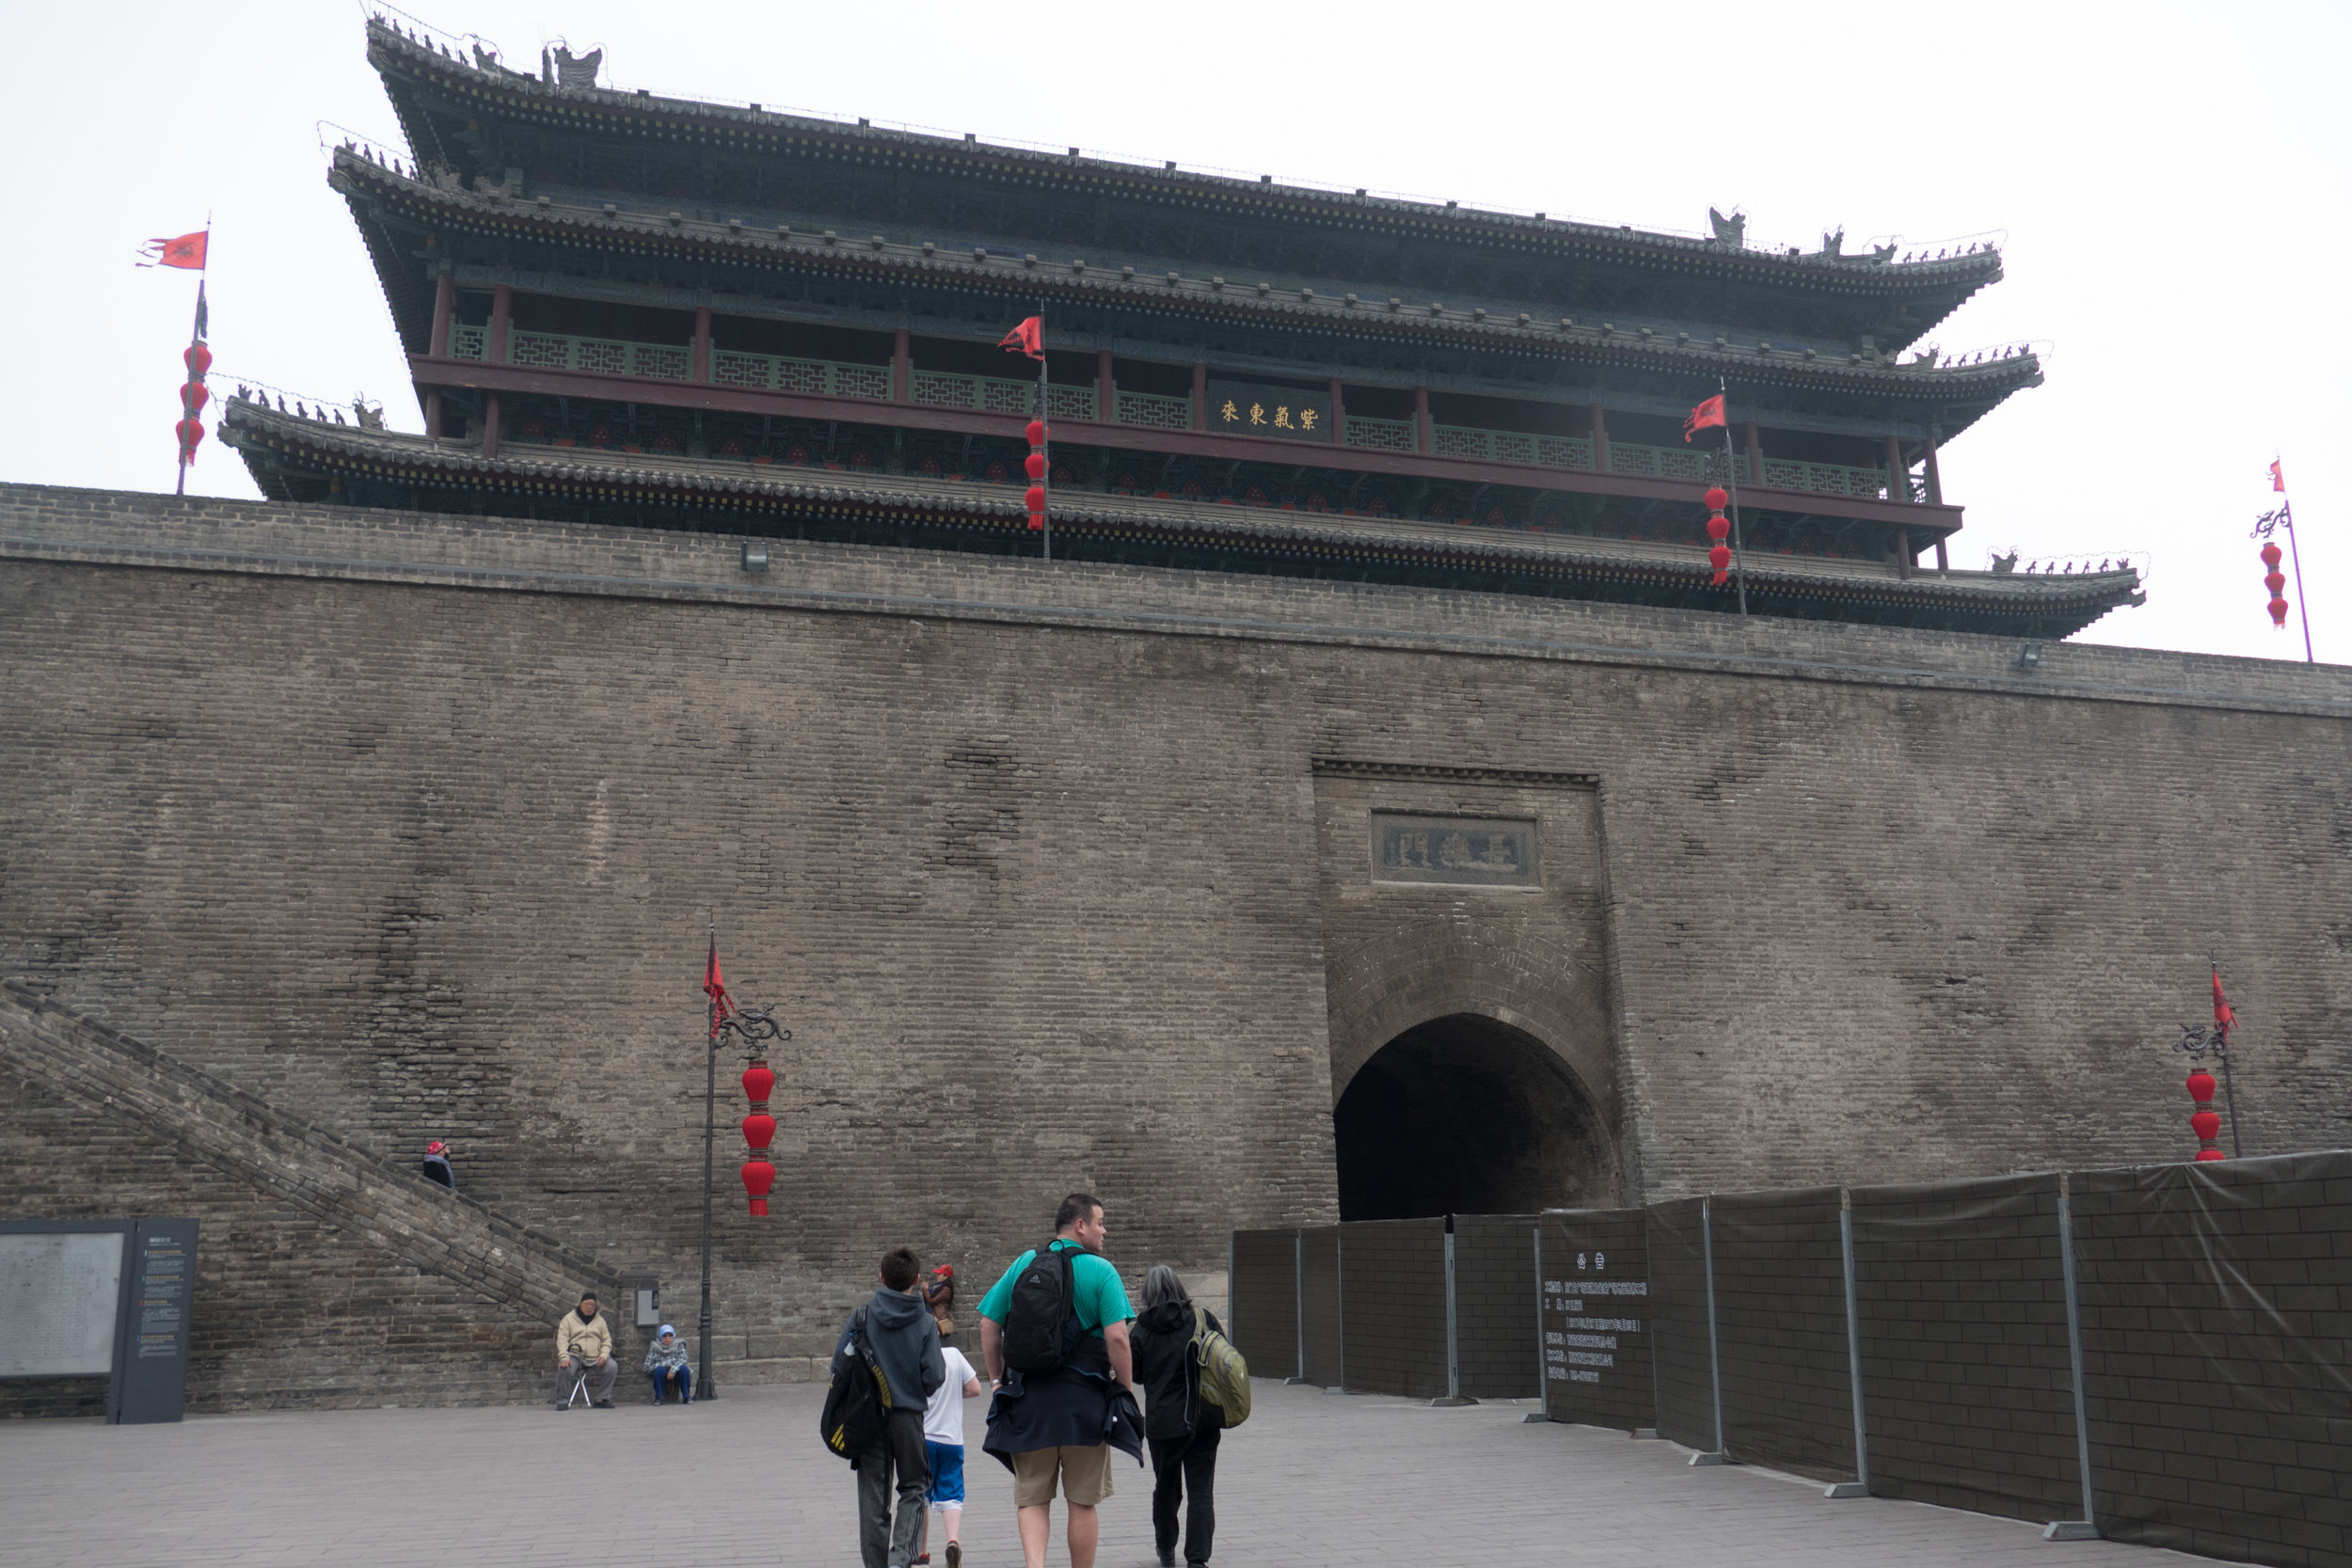 East gate of the Xi'an city wall